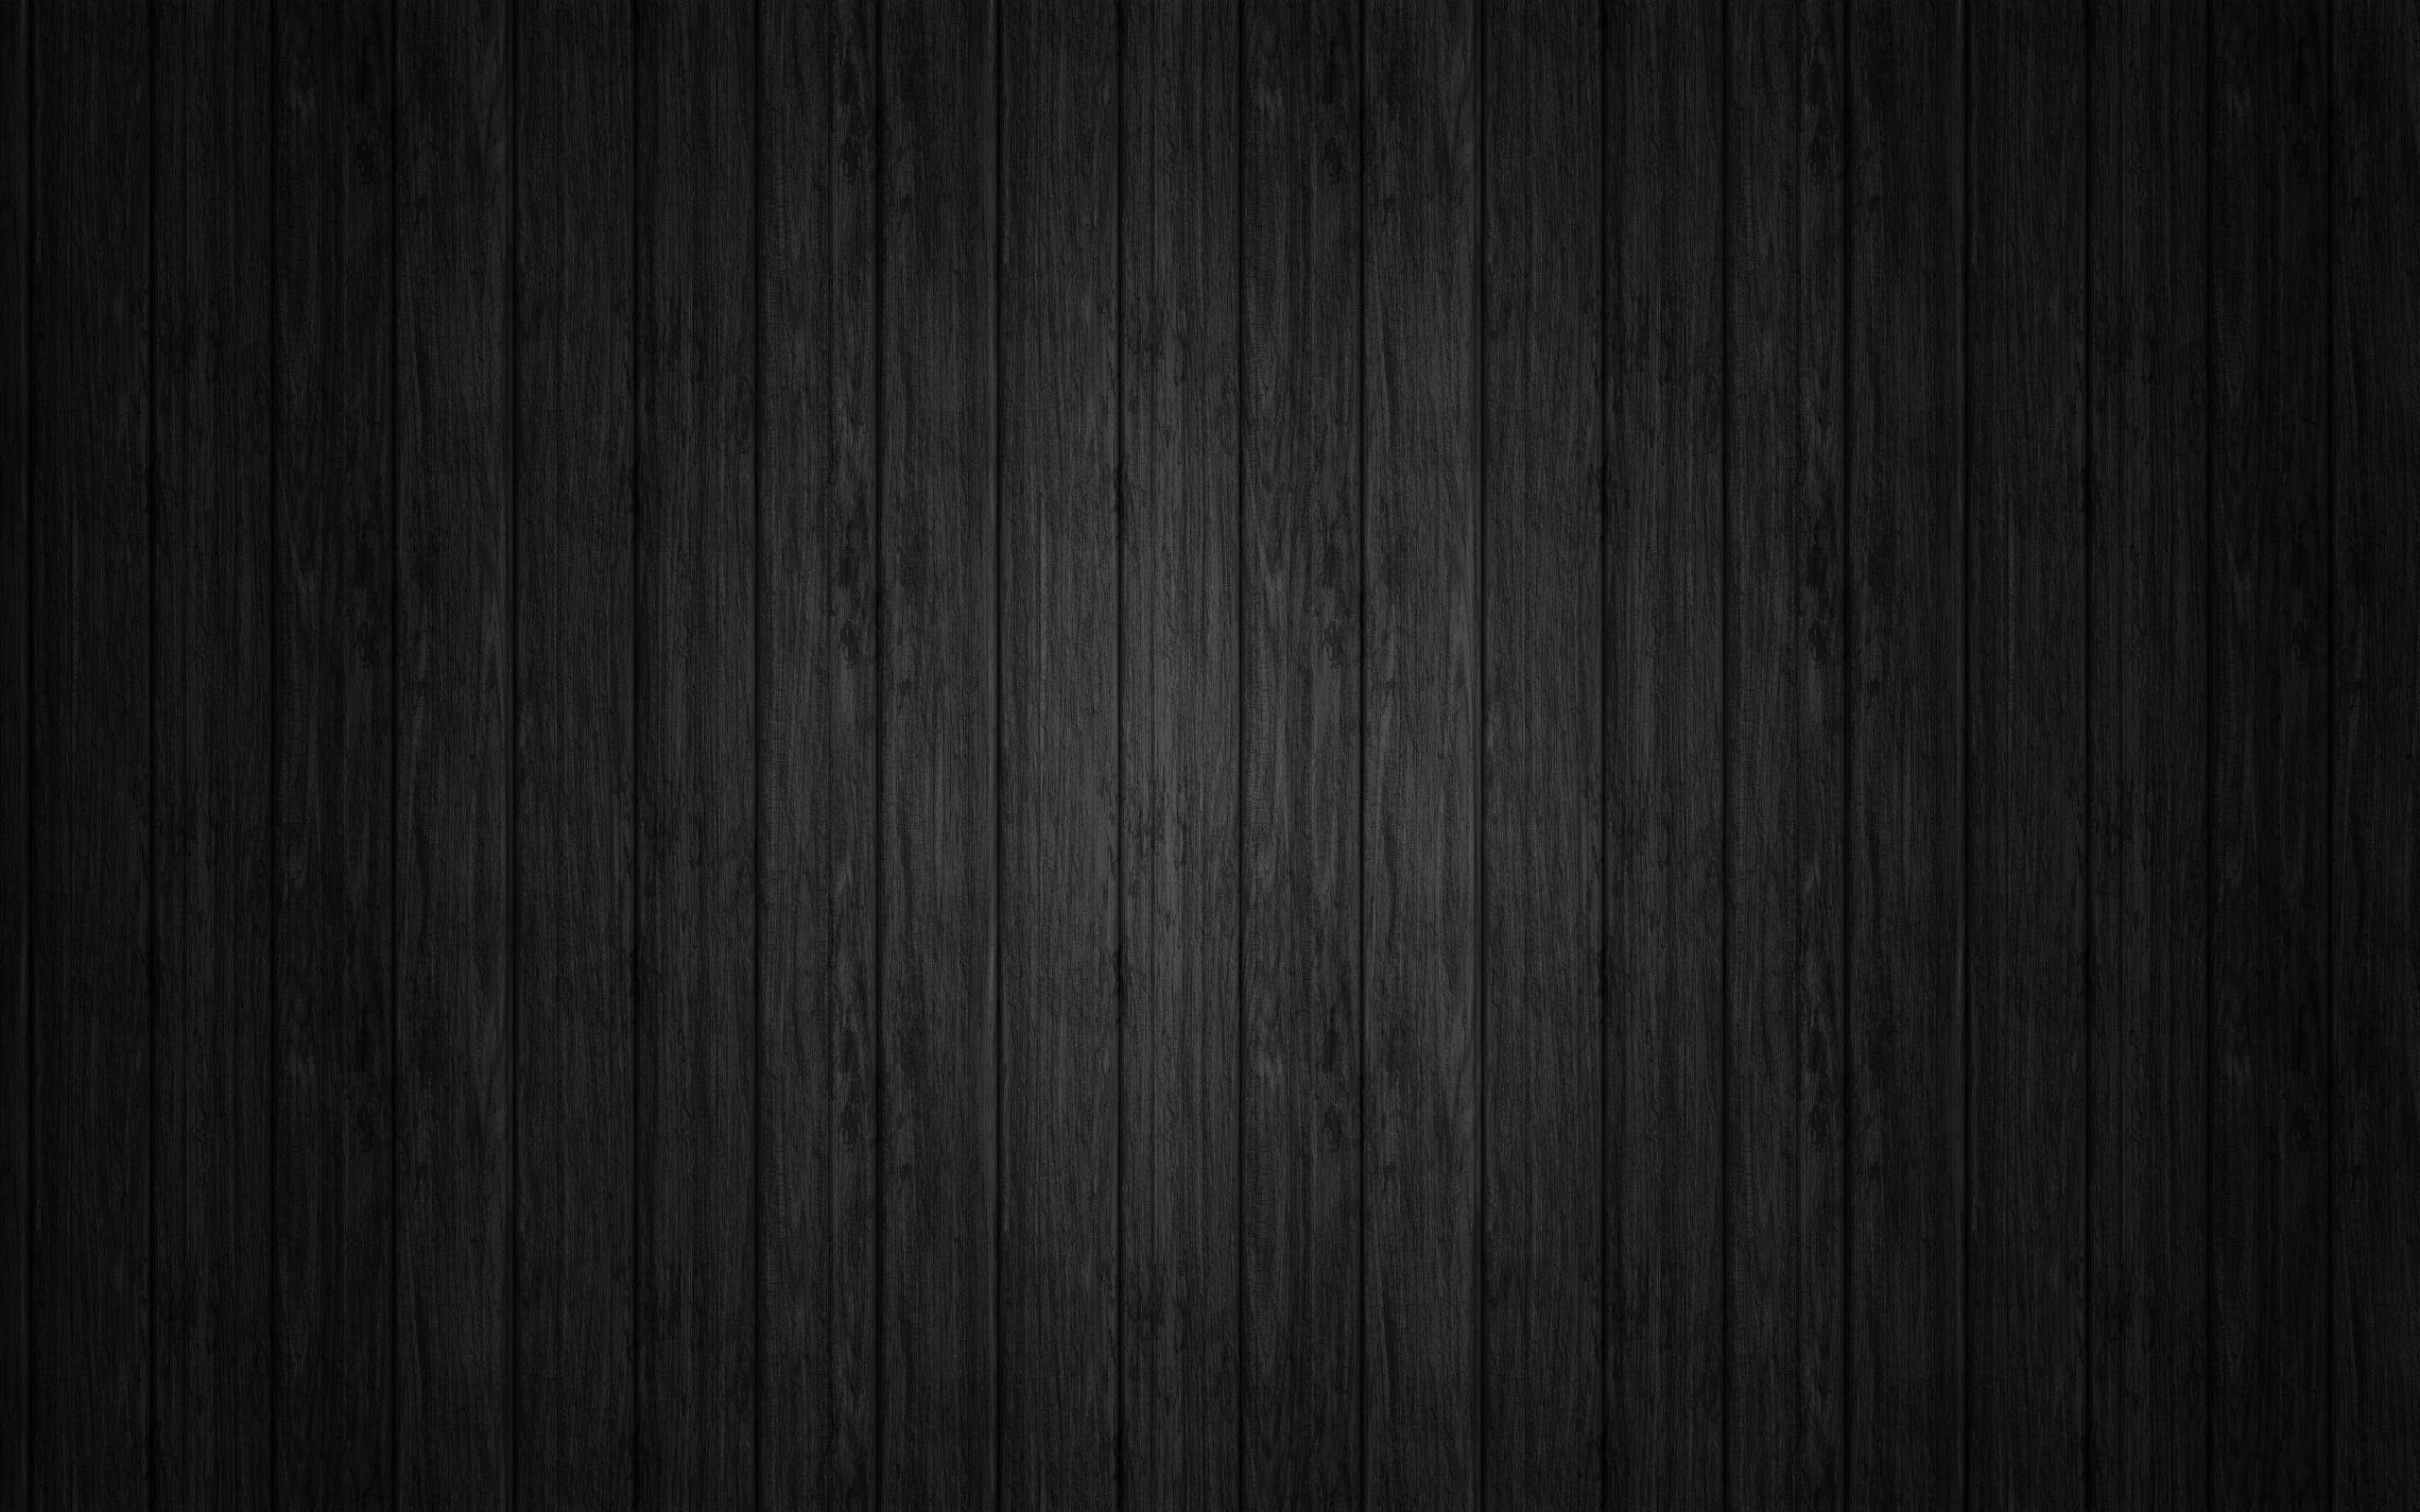 Dark Backgrounds Wallpapers - Wallpaper Cave